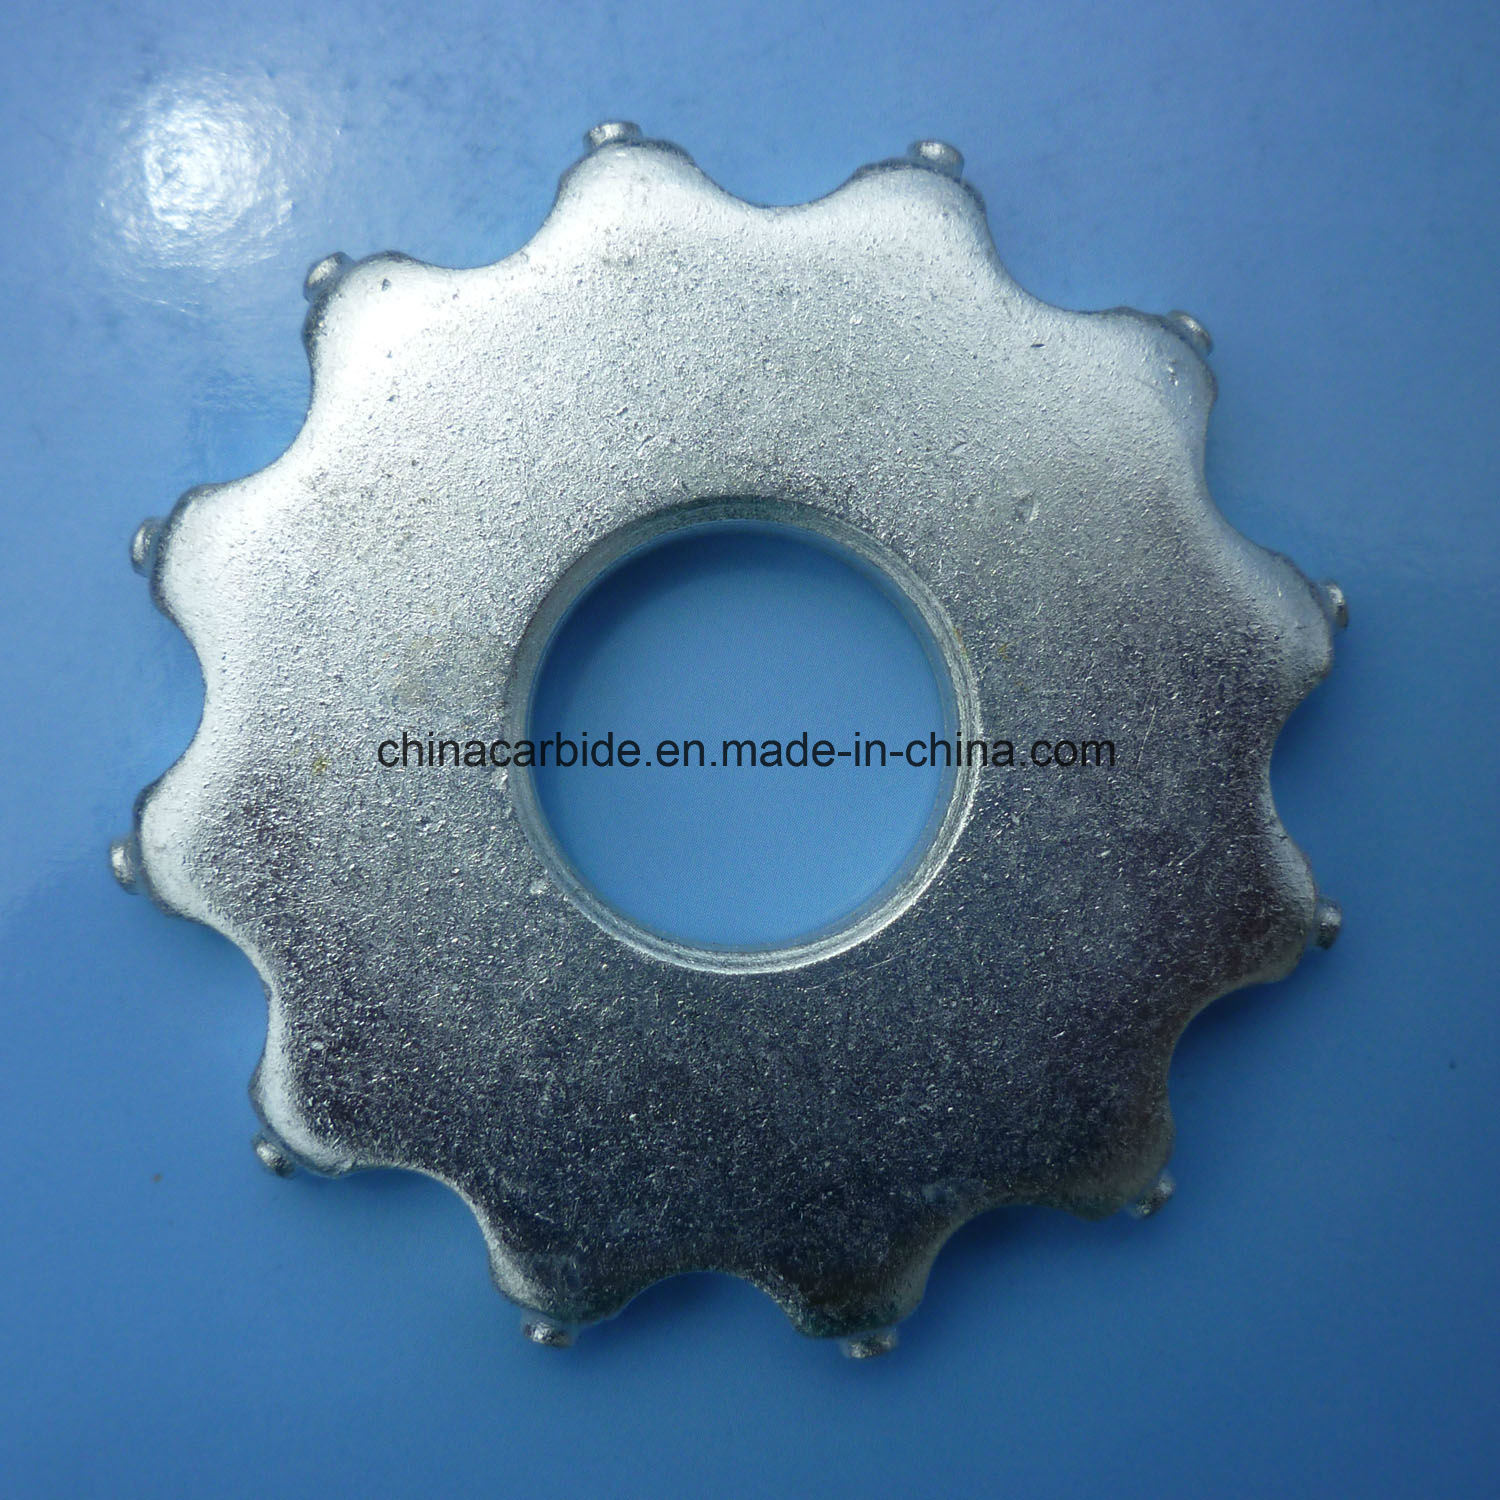 Carbide Flails for Scarifier Machines